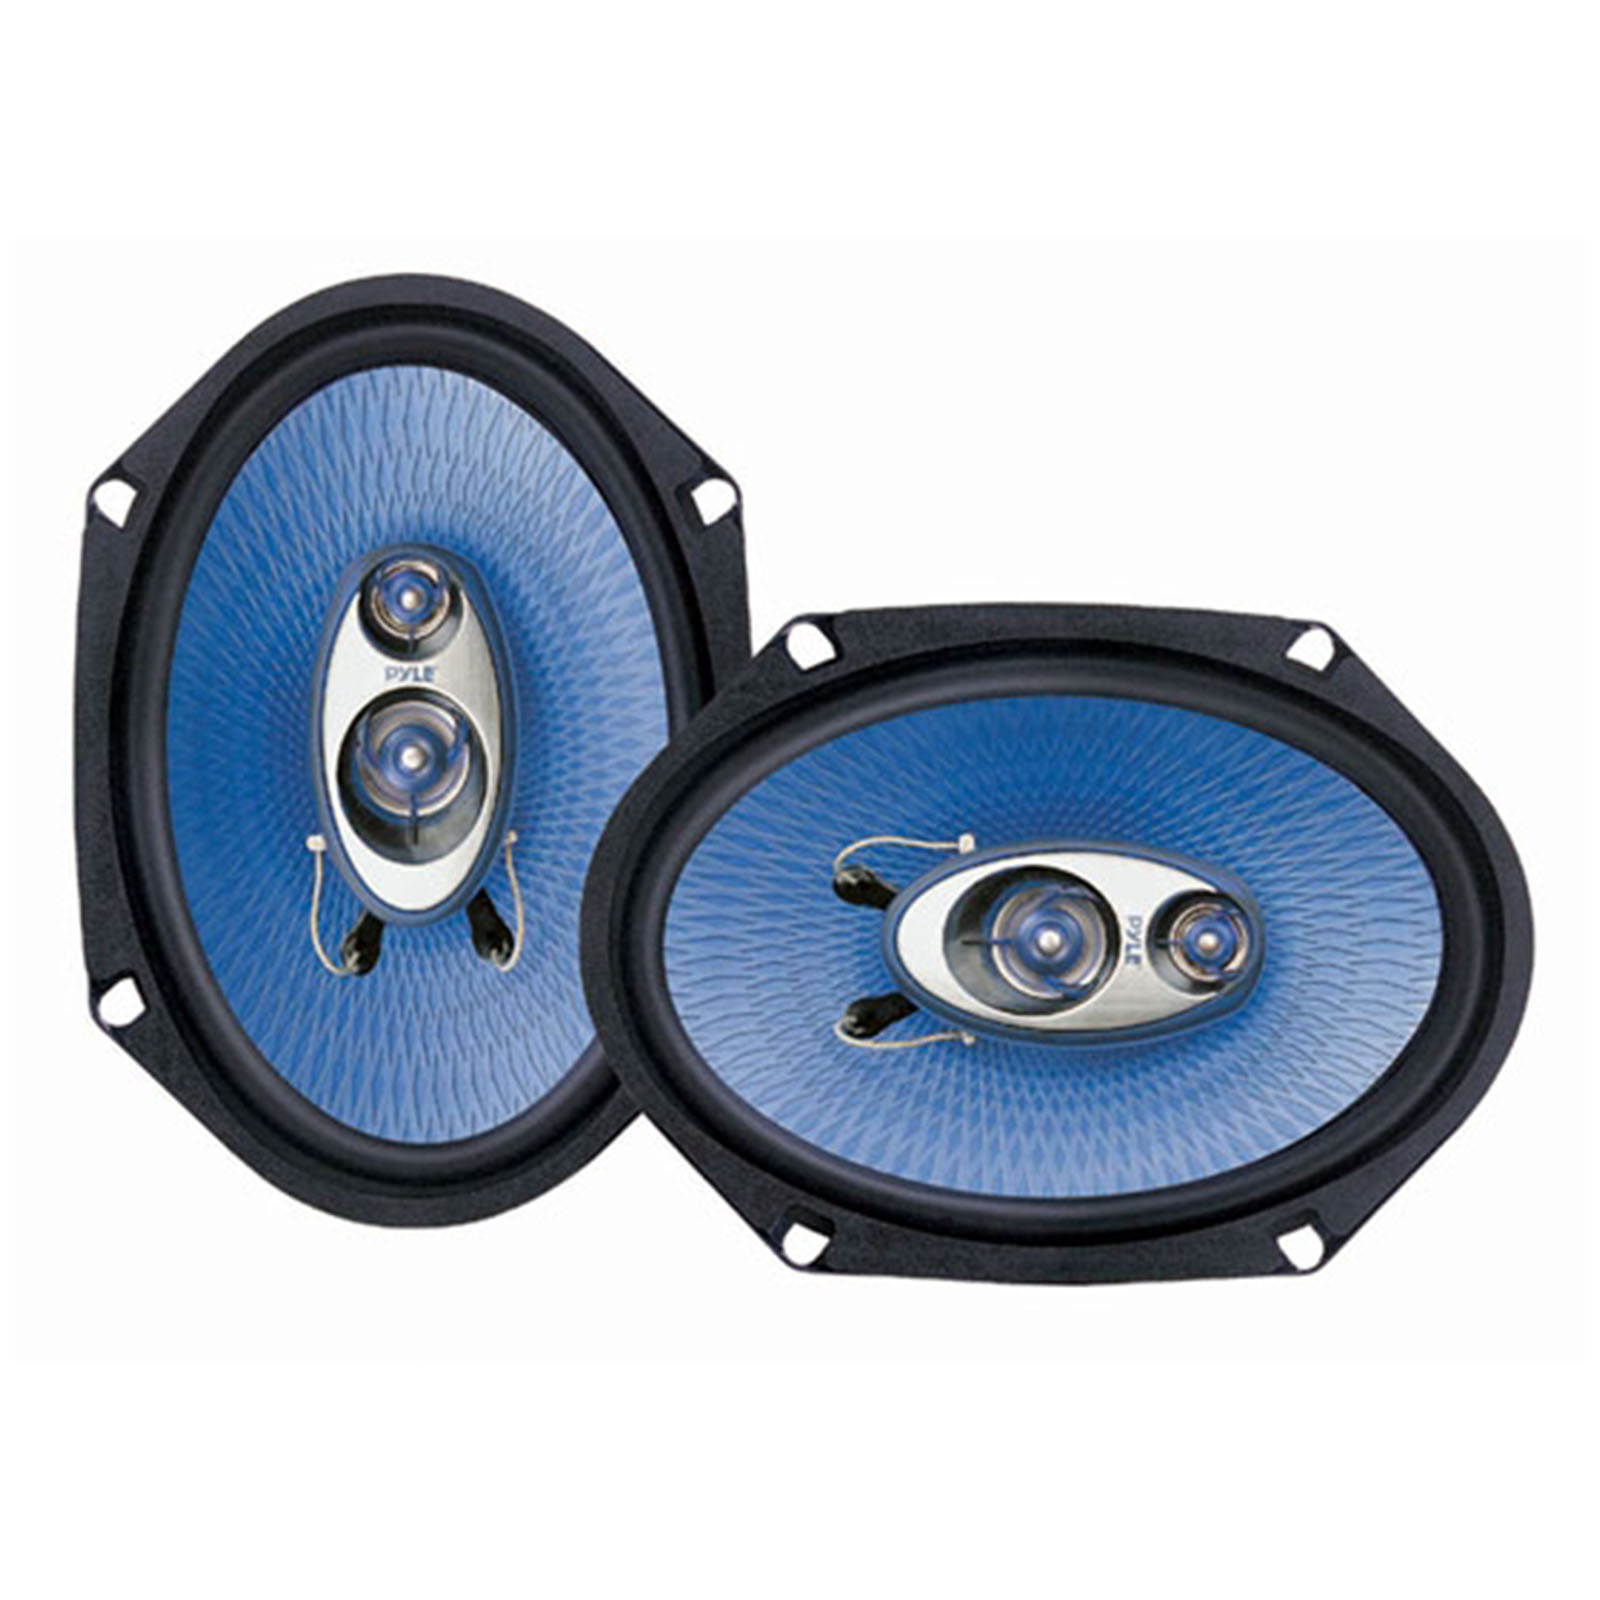 """PYLE PL683BL - 6"""" x 8"""" Car Sound Speaker (Pair) - Upgraded Blue Poly Injection Cone 3-Way 360 Watts w/Non-fatiguing Butyl Rubber Surround 70-20Khz Frequency Response 4 Ohm & 1"""" ASV Voice Coil"""